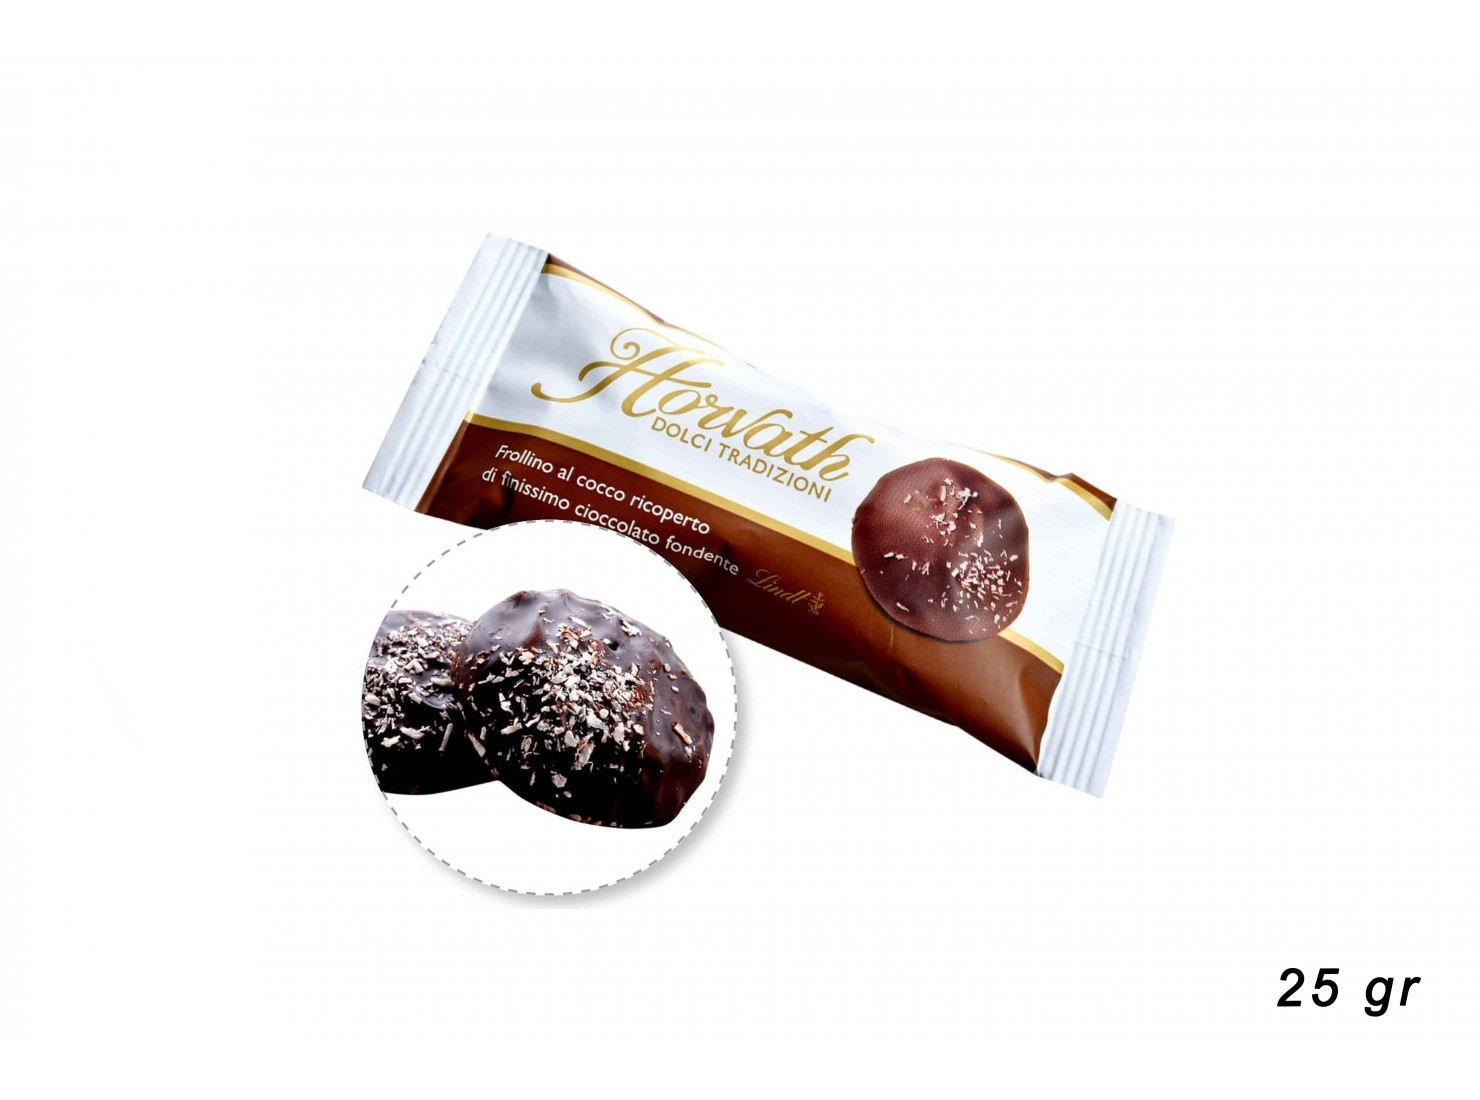 FROLLINI COCCO LINDT 25 GR